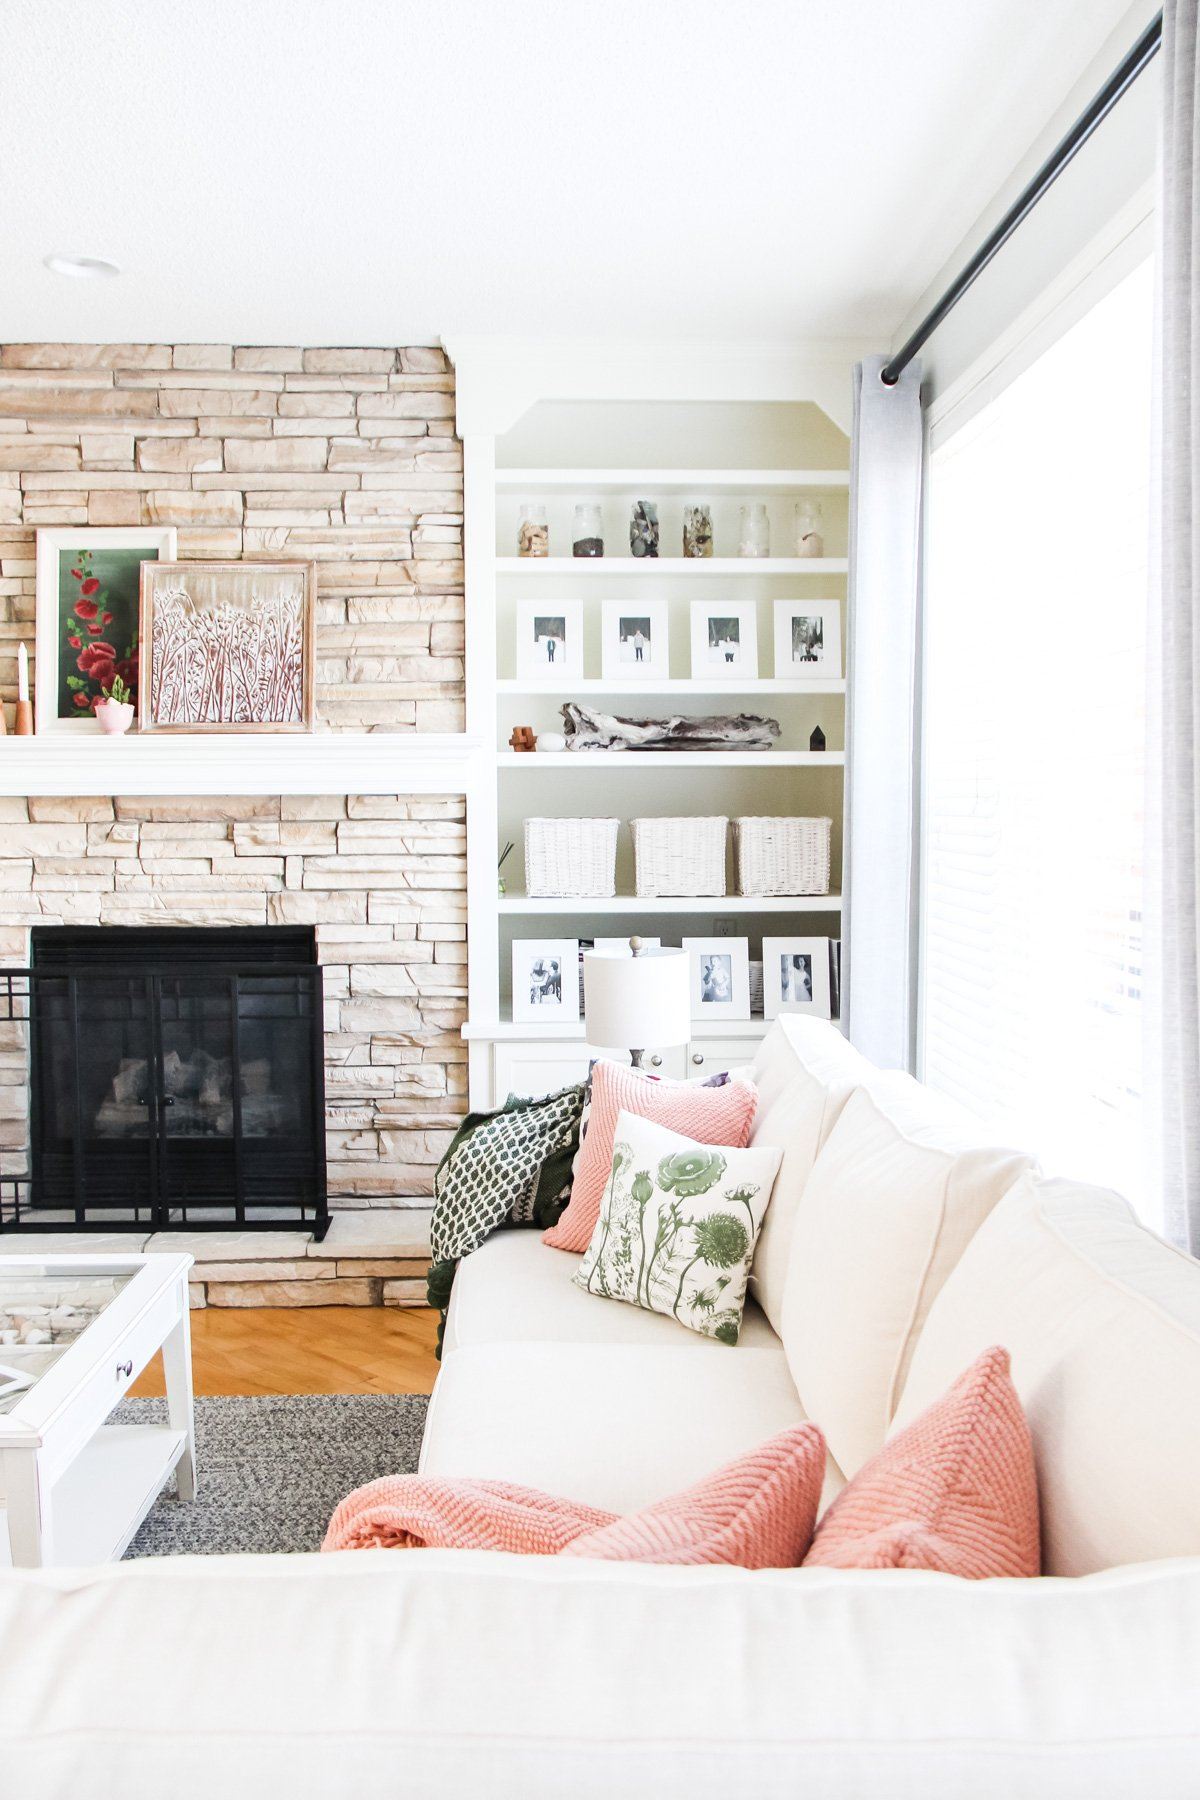 a stone fireplace with a white bookshelf to the right. in the forefront is a couch full of pillows and throw blankets